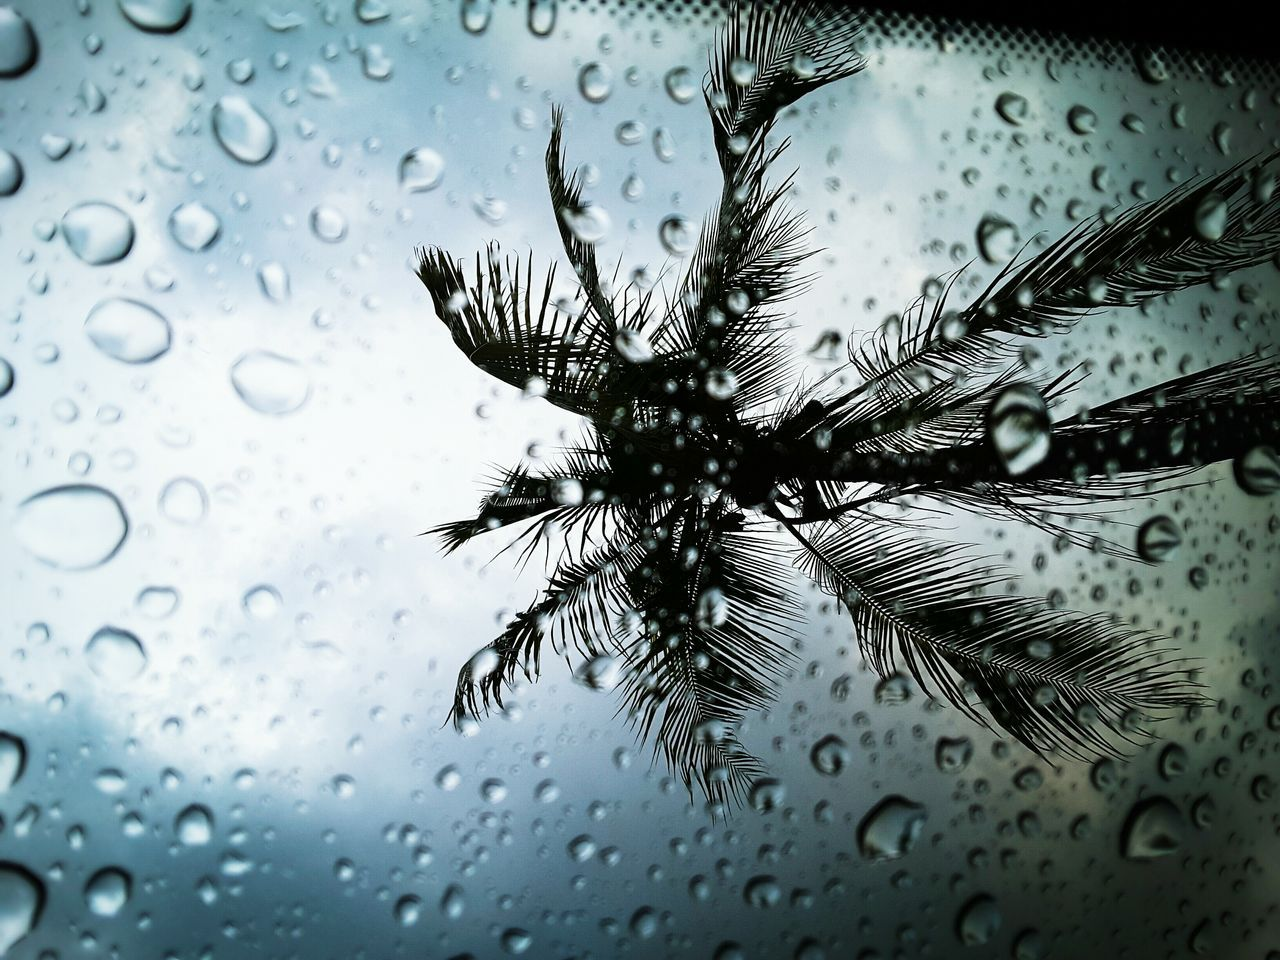 glass - material, drop, water, transparent, close-up, window, no people, full frame, backgrounds, fragility, nature, sky, refreshment, beauty in nature, day, droplet, frosted glass, purity, raindrop, web, spider web, freshness, outdoors